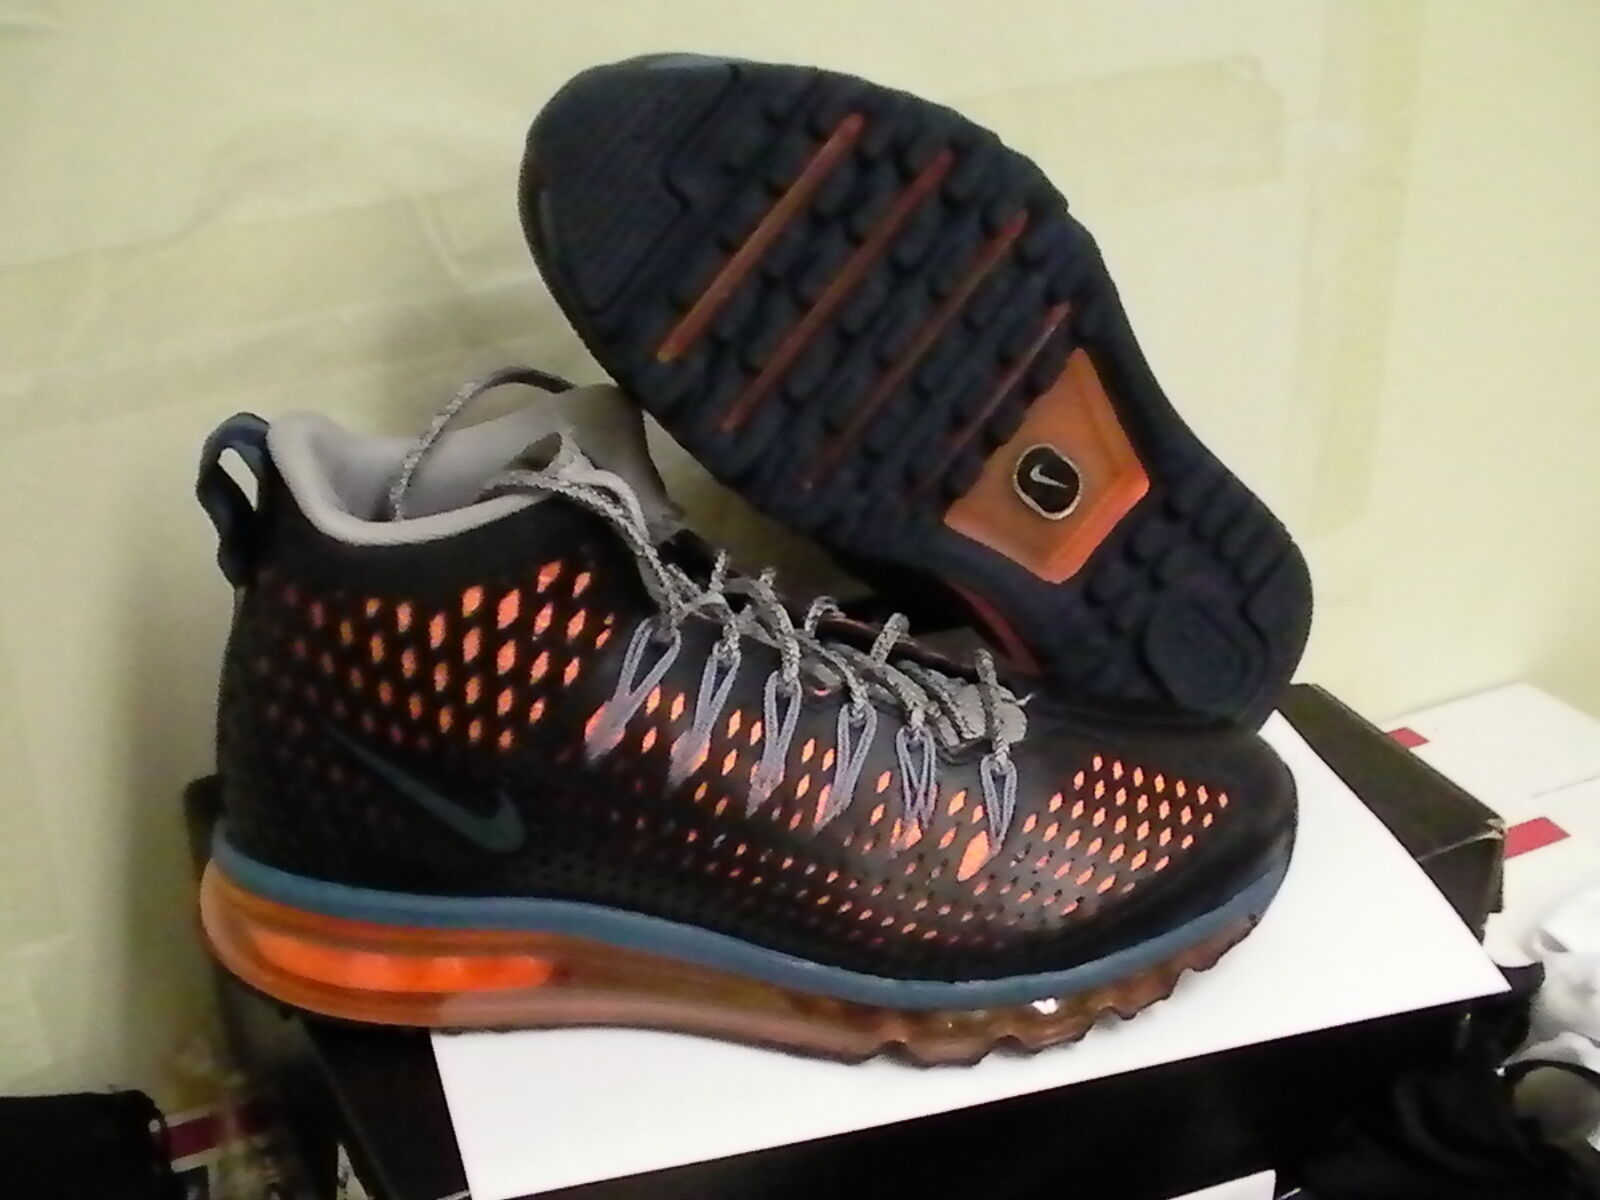 Nike air max Graviton running shoes size 8 us Great discount